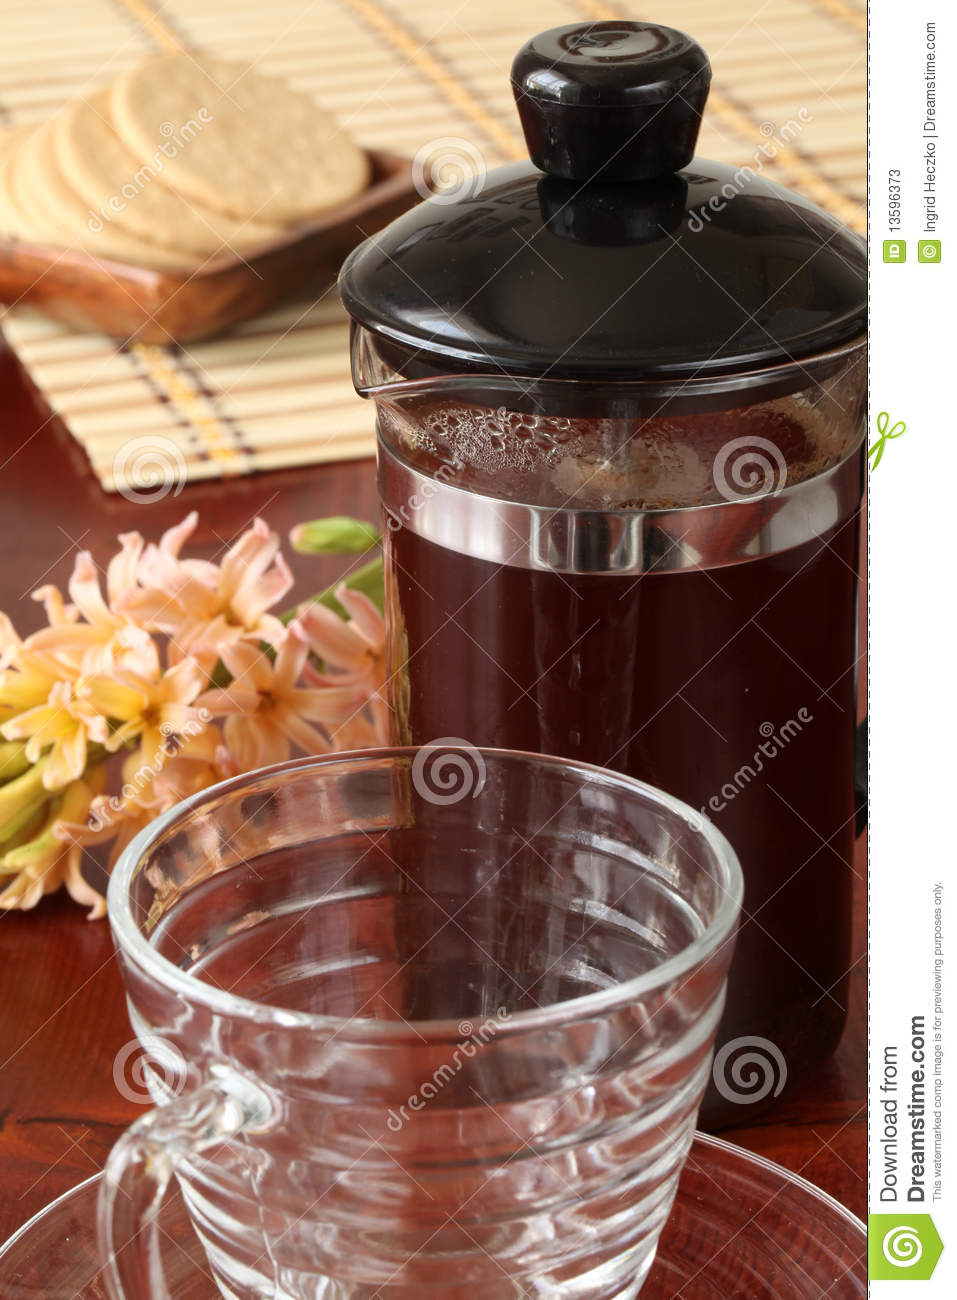 Pink French Press Coffee Maker : French Press With Coffee Stock Photos - Image: 13596373